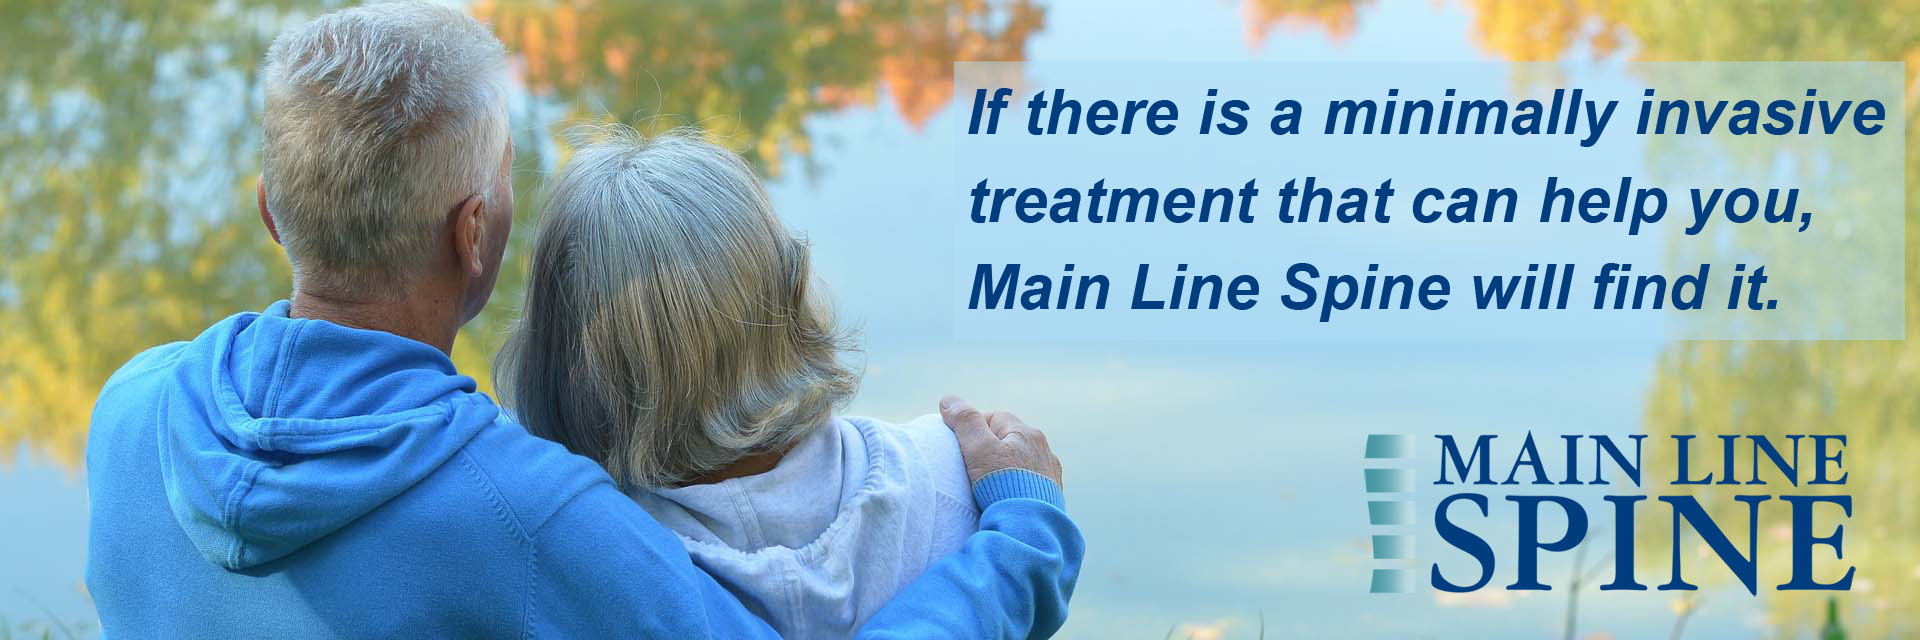 Main Line Spine Will Help You Find It - Couple Relaxing